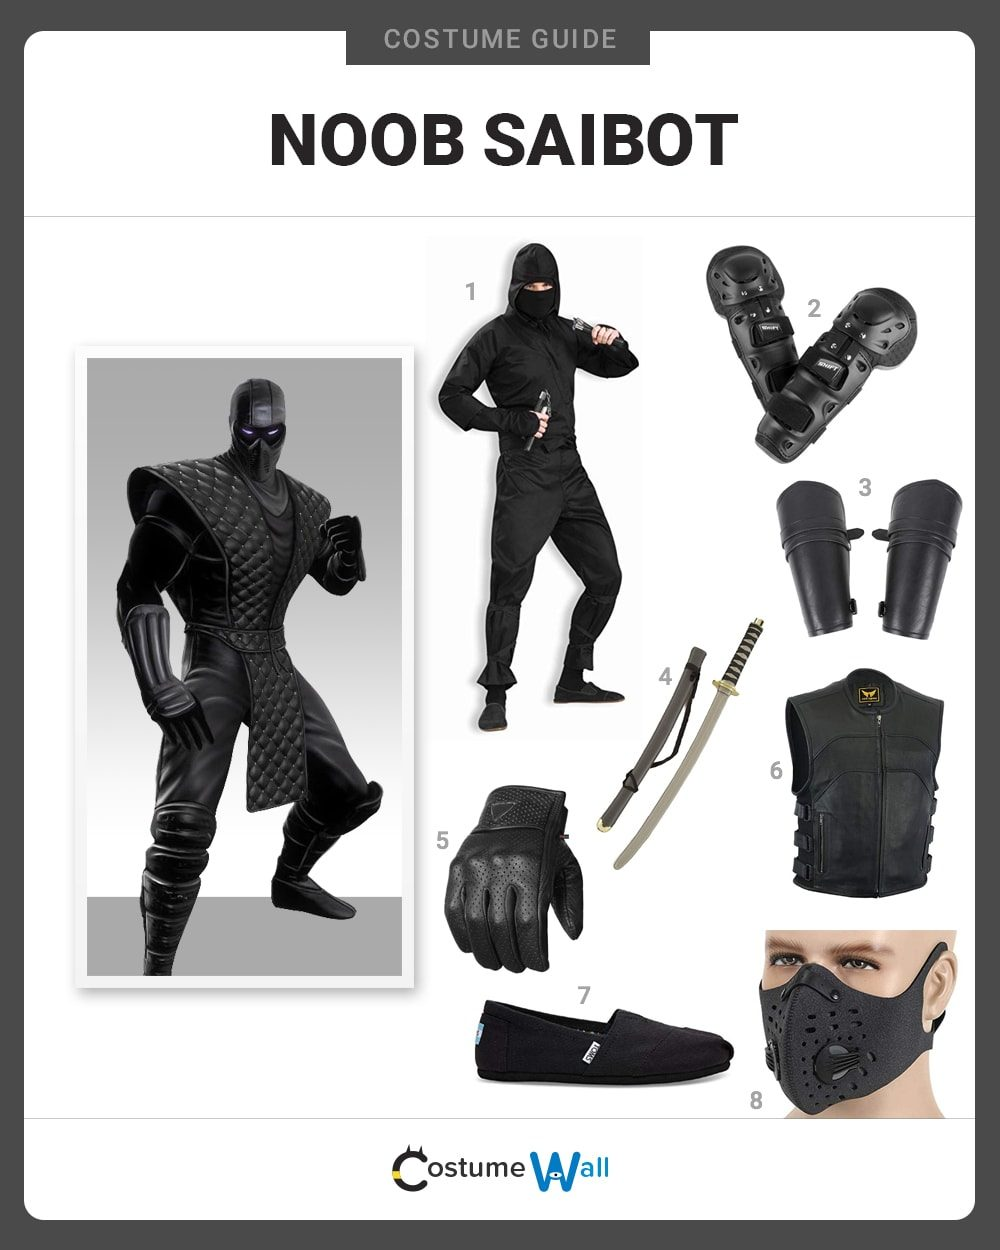 Noob Saibot Costume Guide